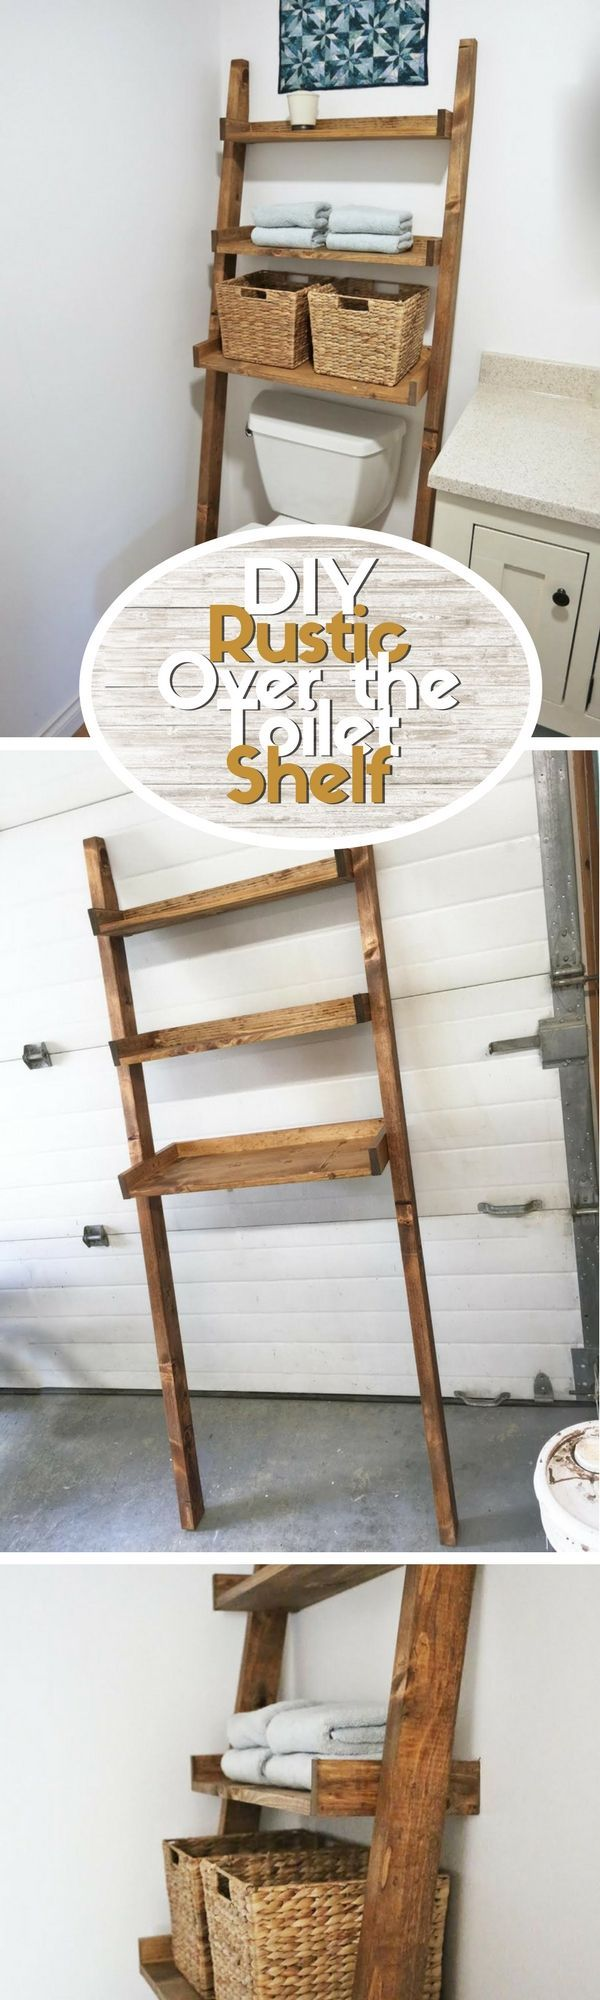 Bath ladder storage design make your bathroom more cute and cool - 15 Charming Diy Storage Solutions For A Small Bathroom